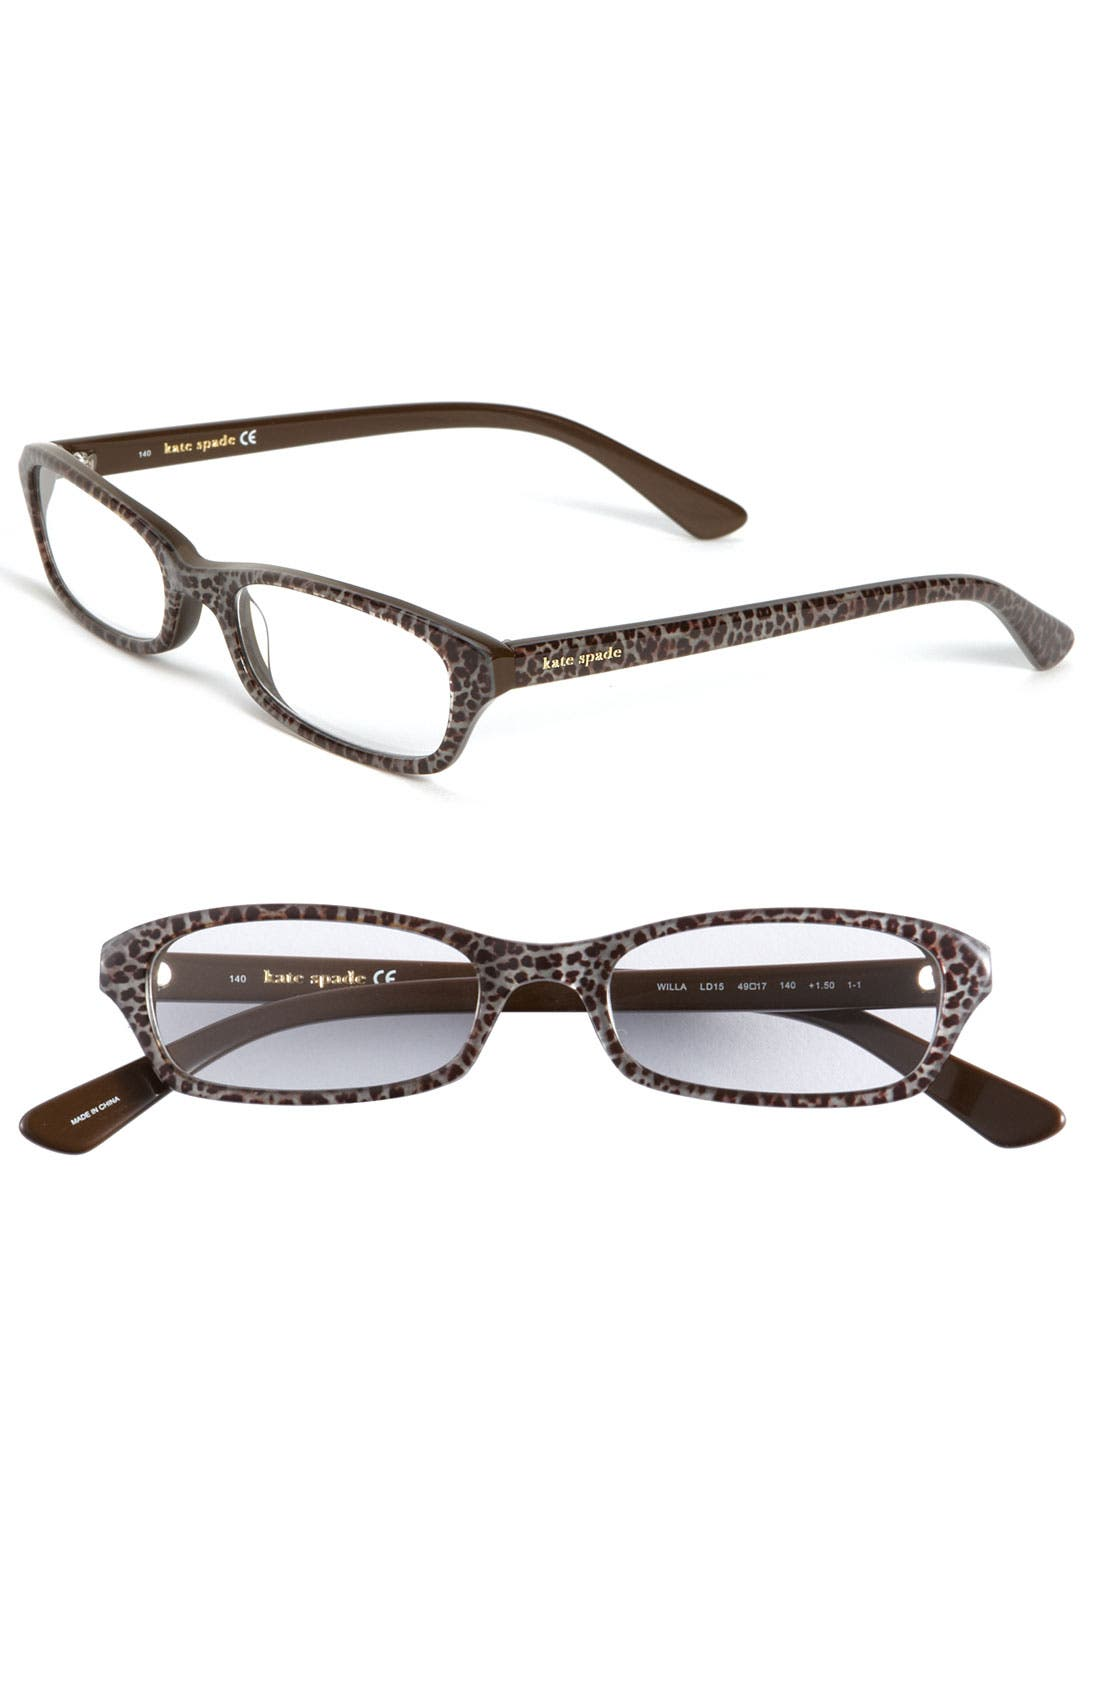 Main Image - kate spade new york 'willa' reading glasses (Online Only)